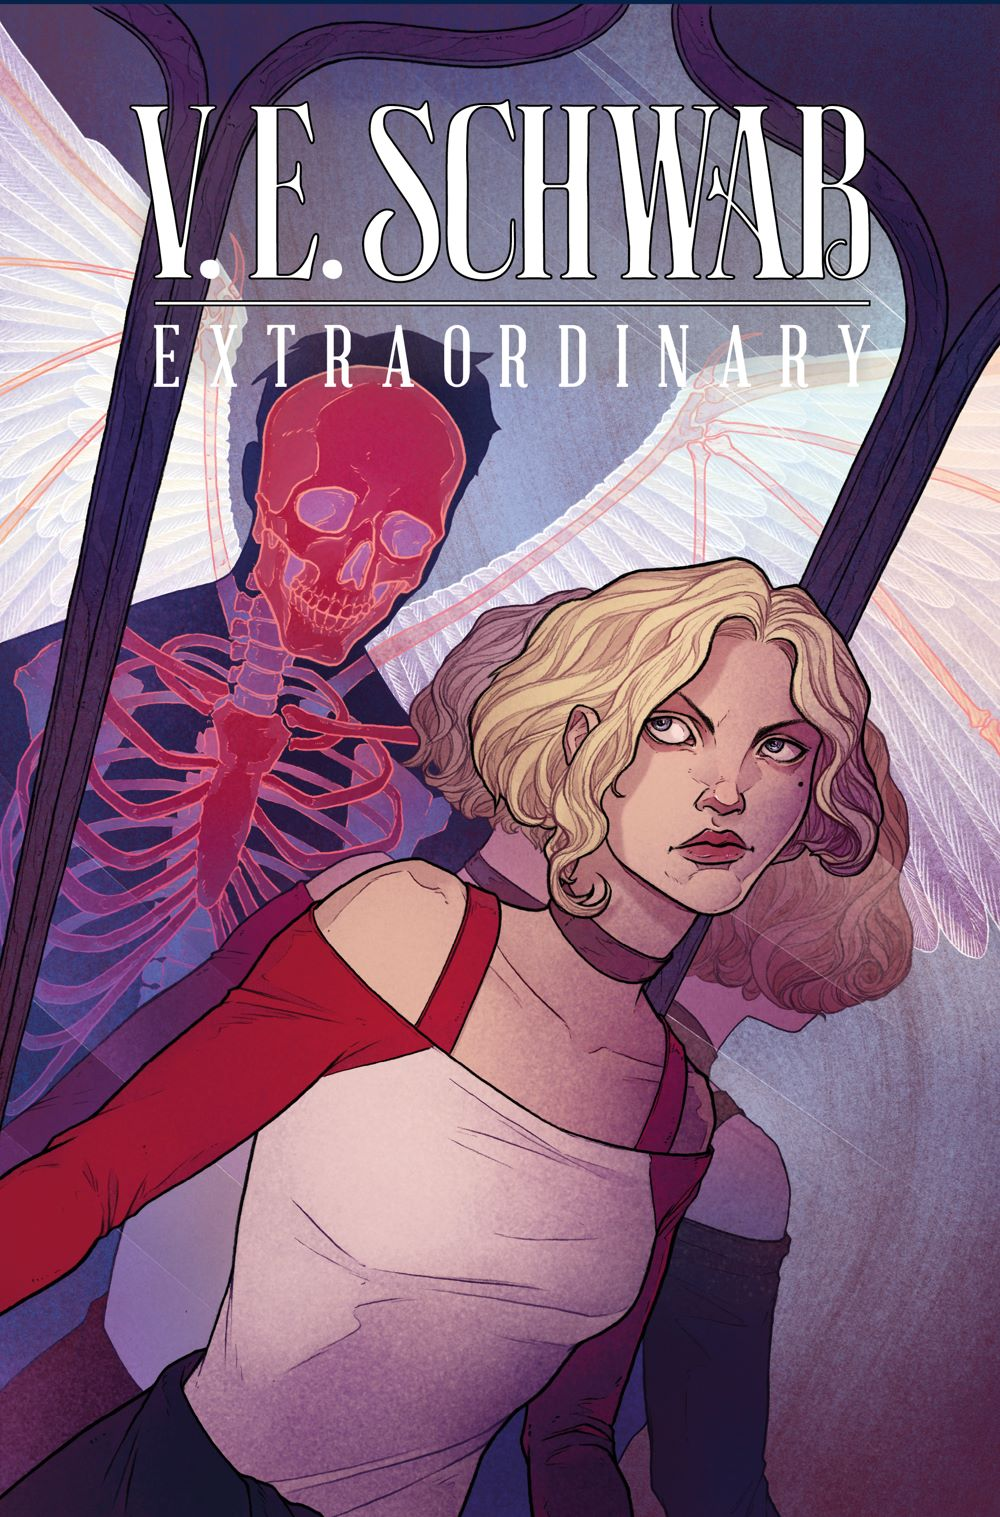 EXTRAORDINARY-1-COVER-D-LENKA-SIMECKOVA Titan Comics June 2021 Solicitations